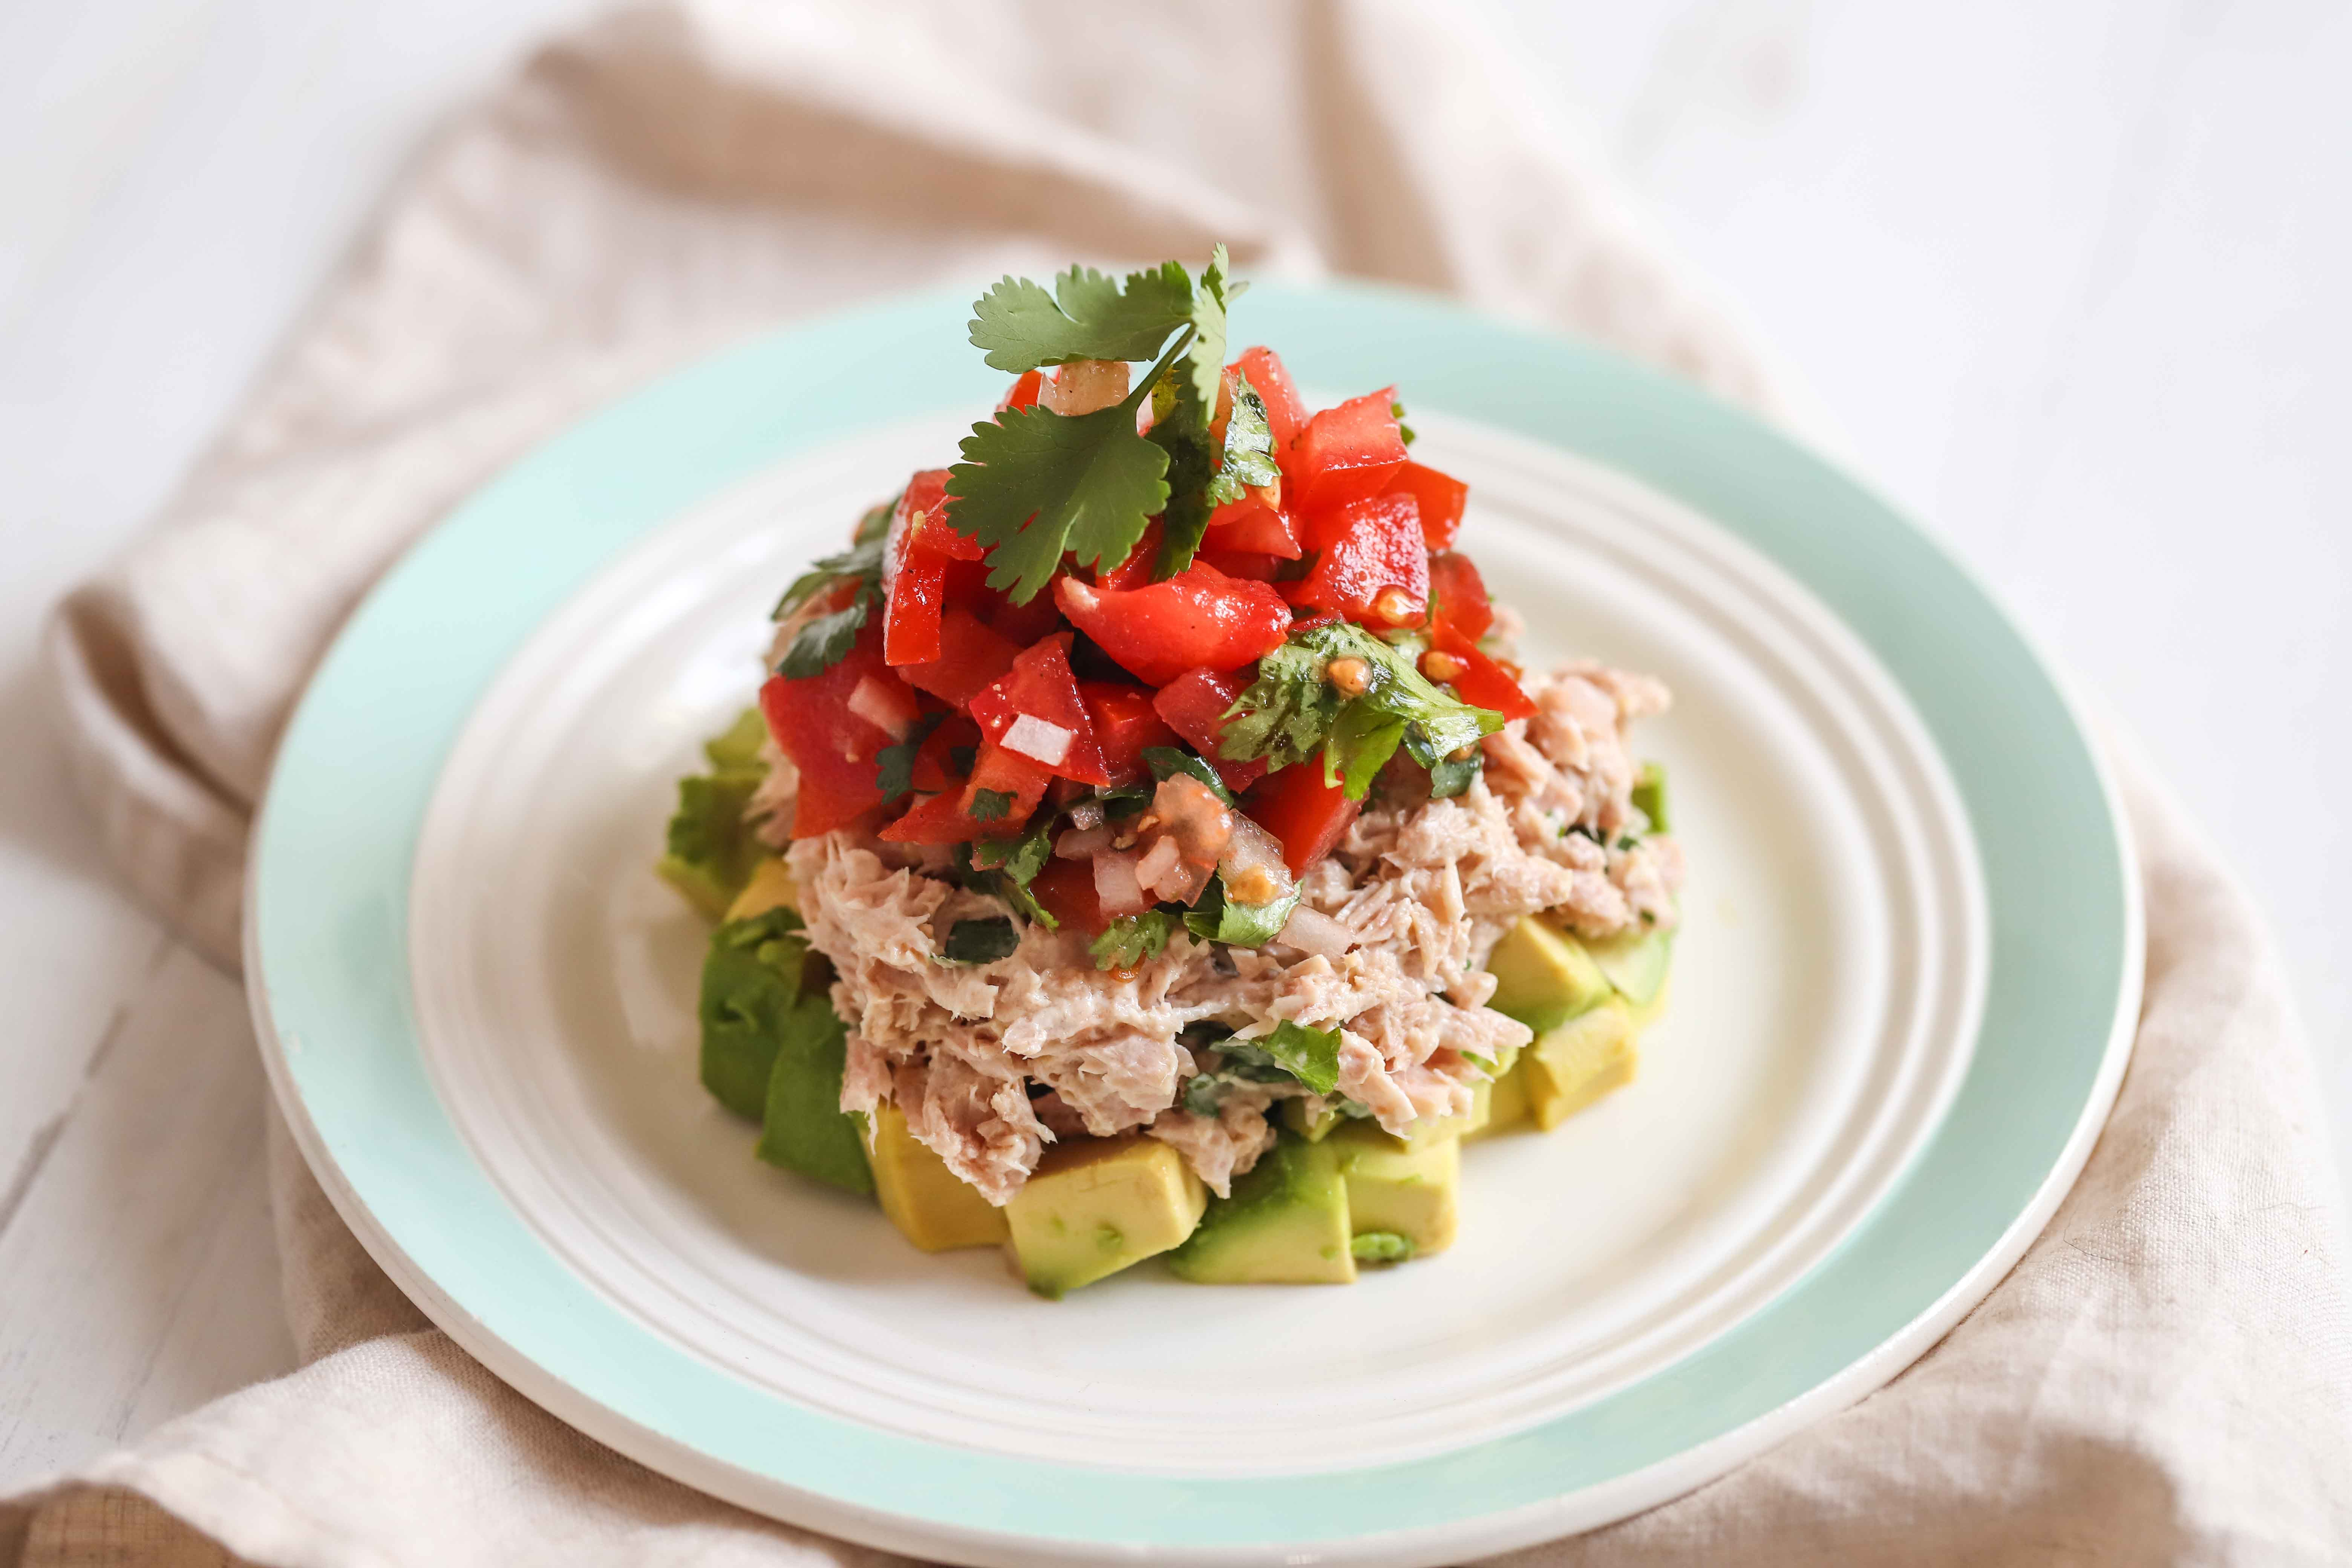 Avocado and tuna salad, so easy to make